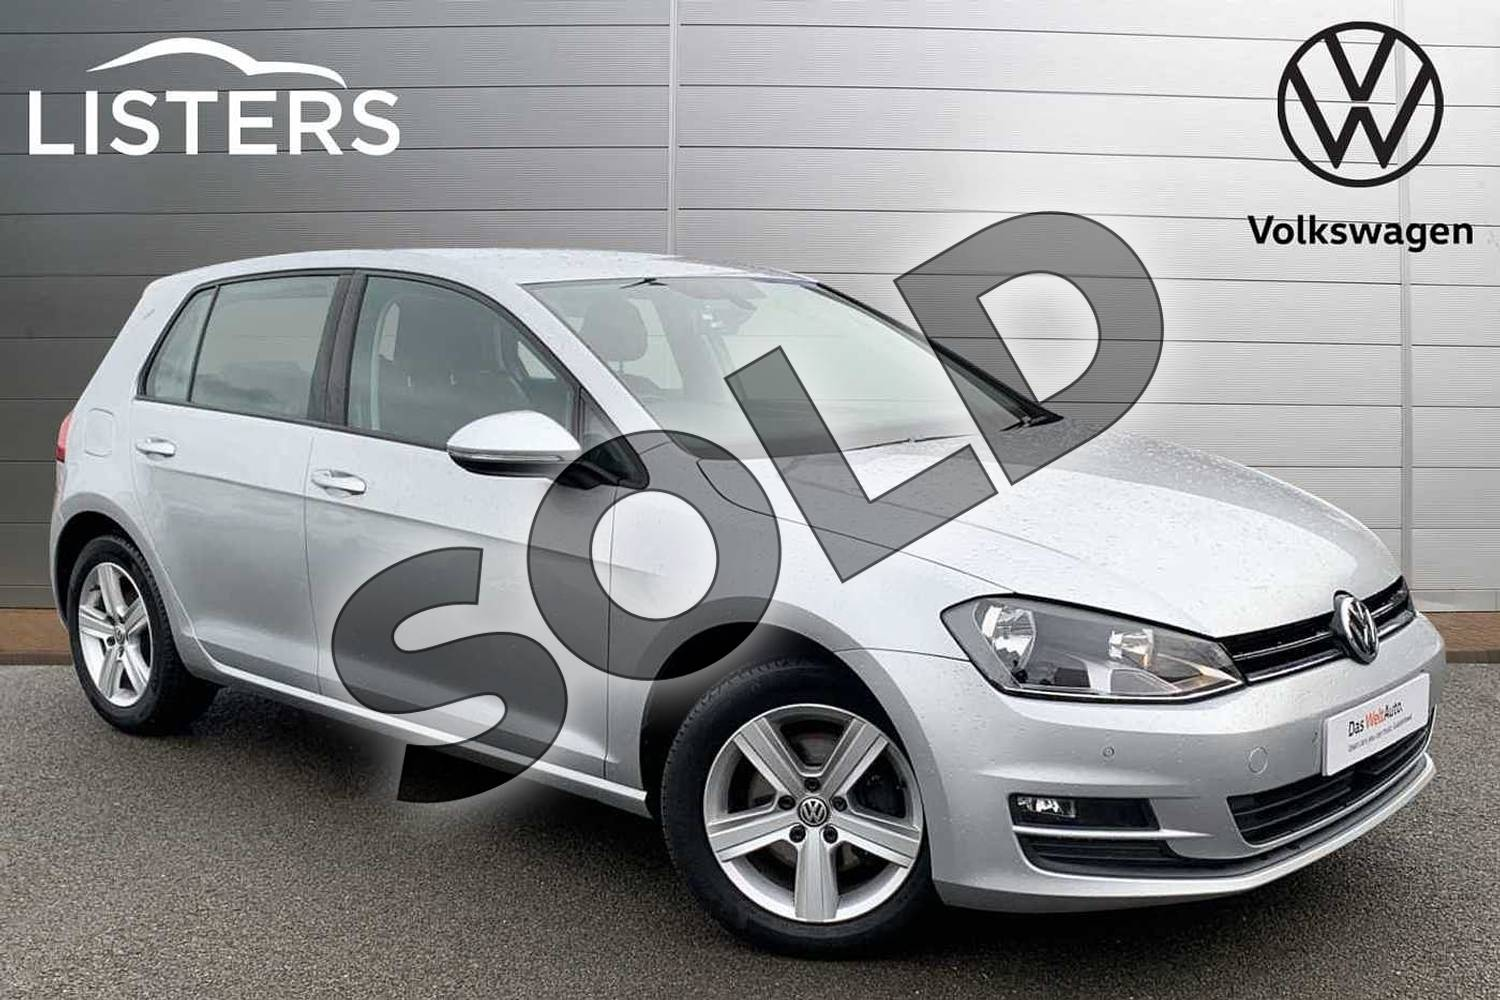 2015 Volkswagen Golf Hatchback 1.4 TSI Match 5dr in Reflex silver at Listers Volkswagen Stratford-upon-Avon